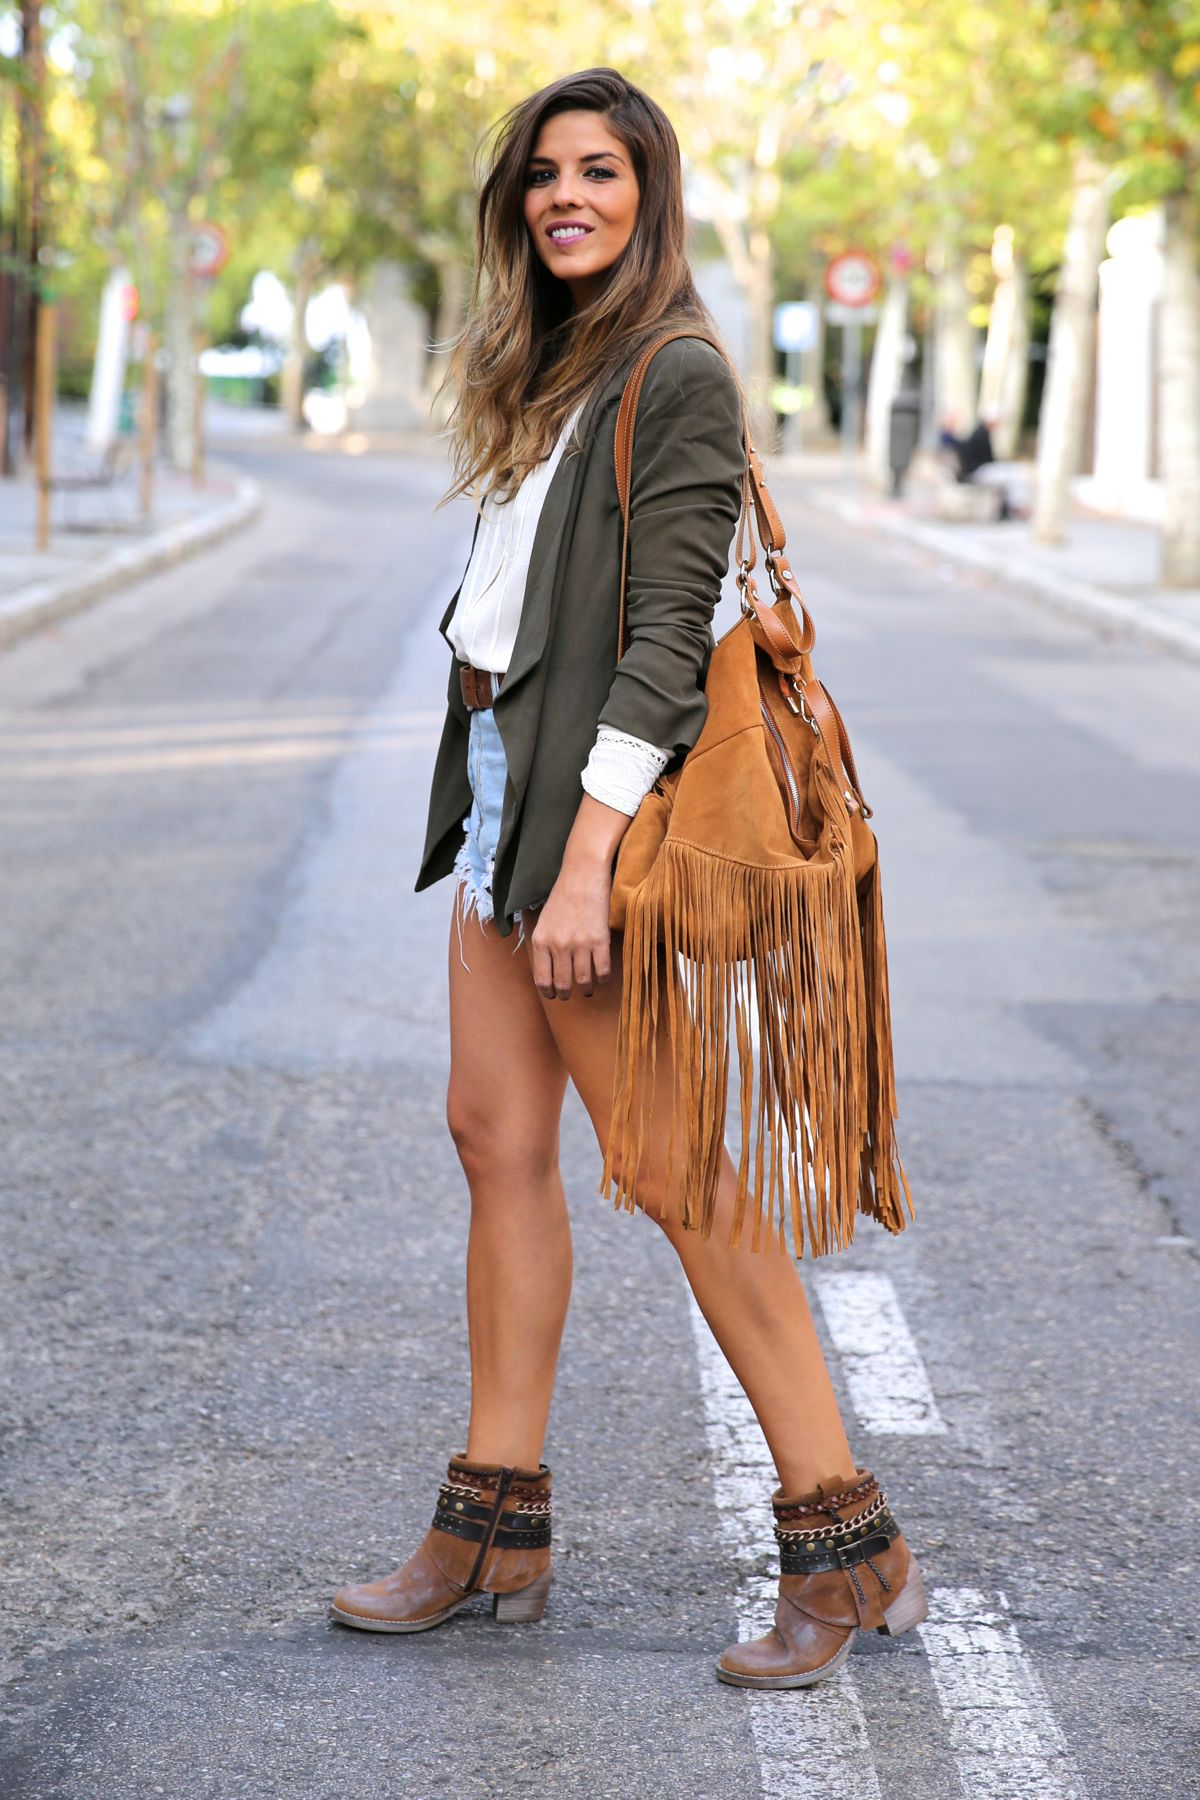 trendy_taste-look-outfit-street_style-ootd-blog-blogger-fashion_spain-moda_españa-boho-hippie-flecos-botines_camperos-cowboy_booties-mochila-backpack-blusa-camisa-denim-shorts-vaqueros-12